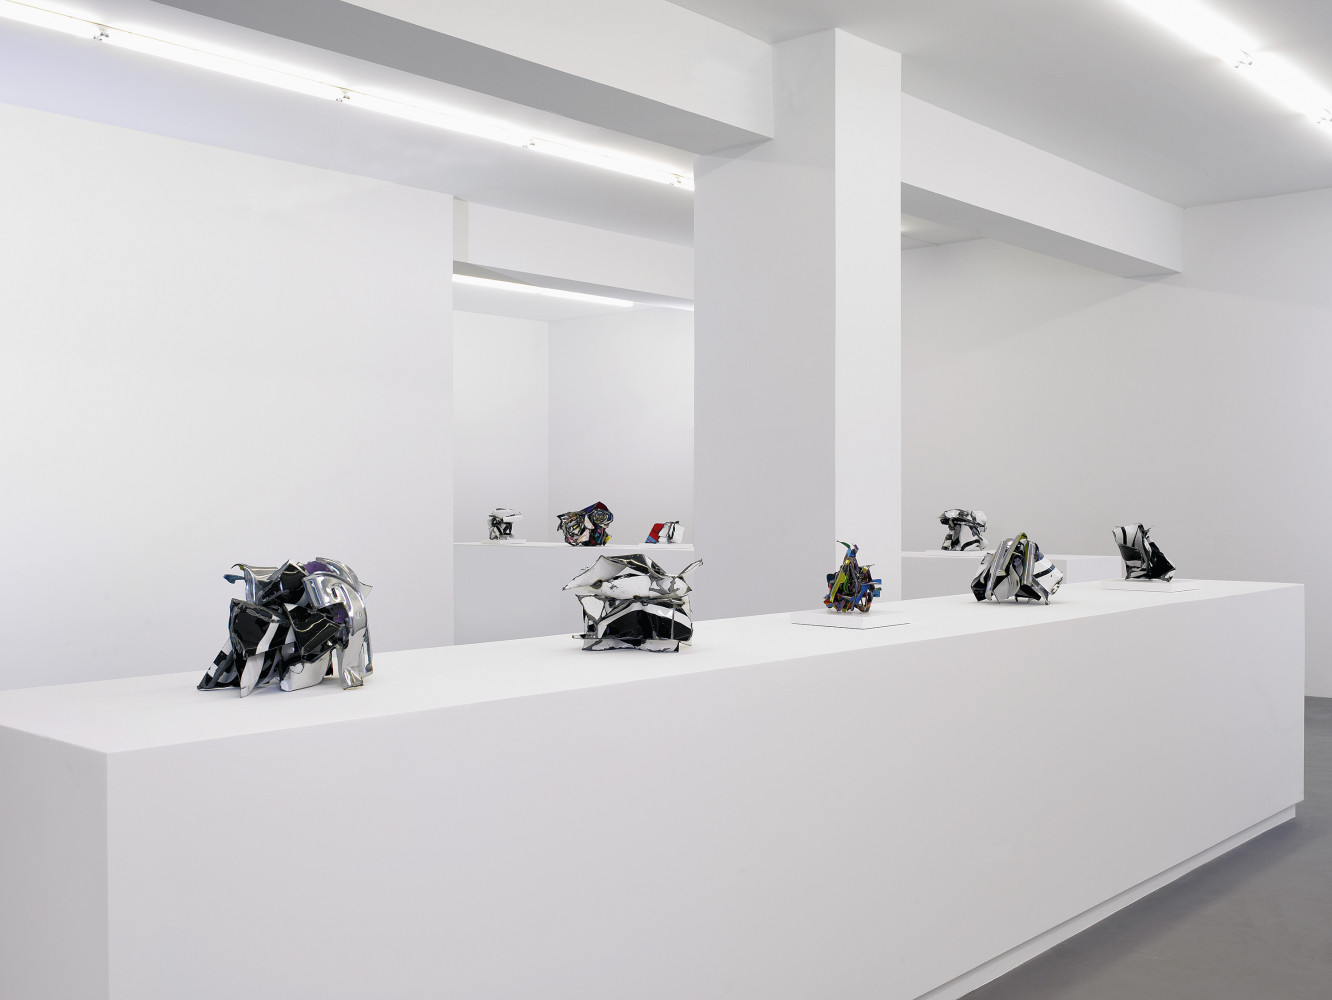 John Chamberlain, 'It's his Show', Installation view, Buchmann Galerie, 2006